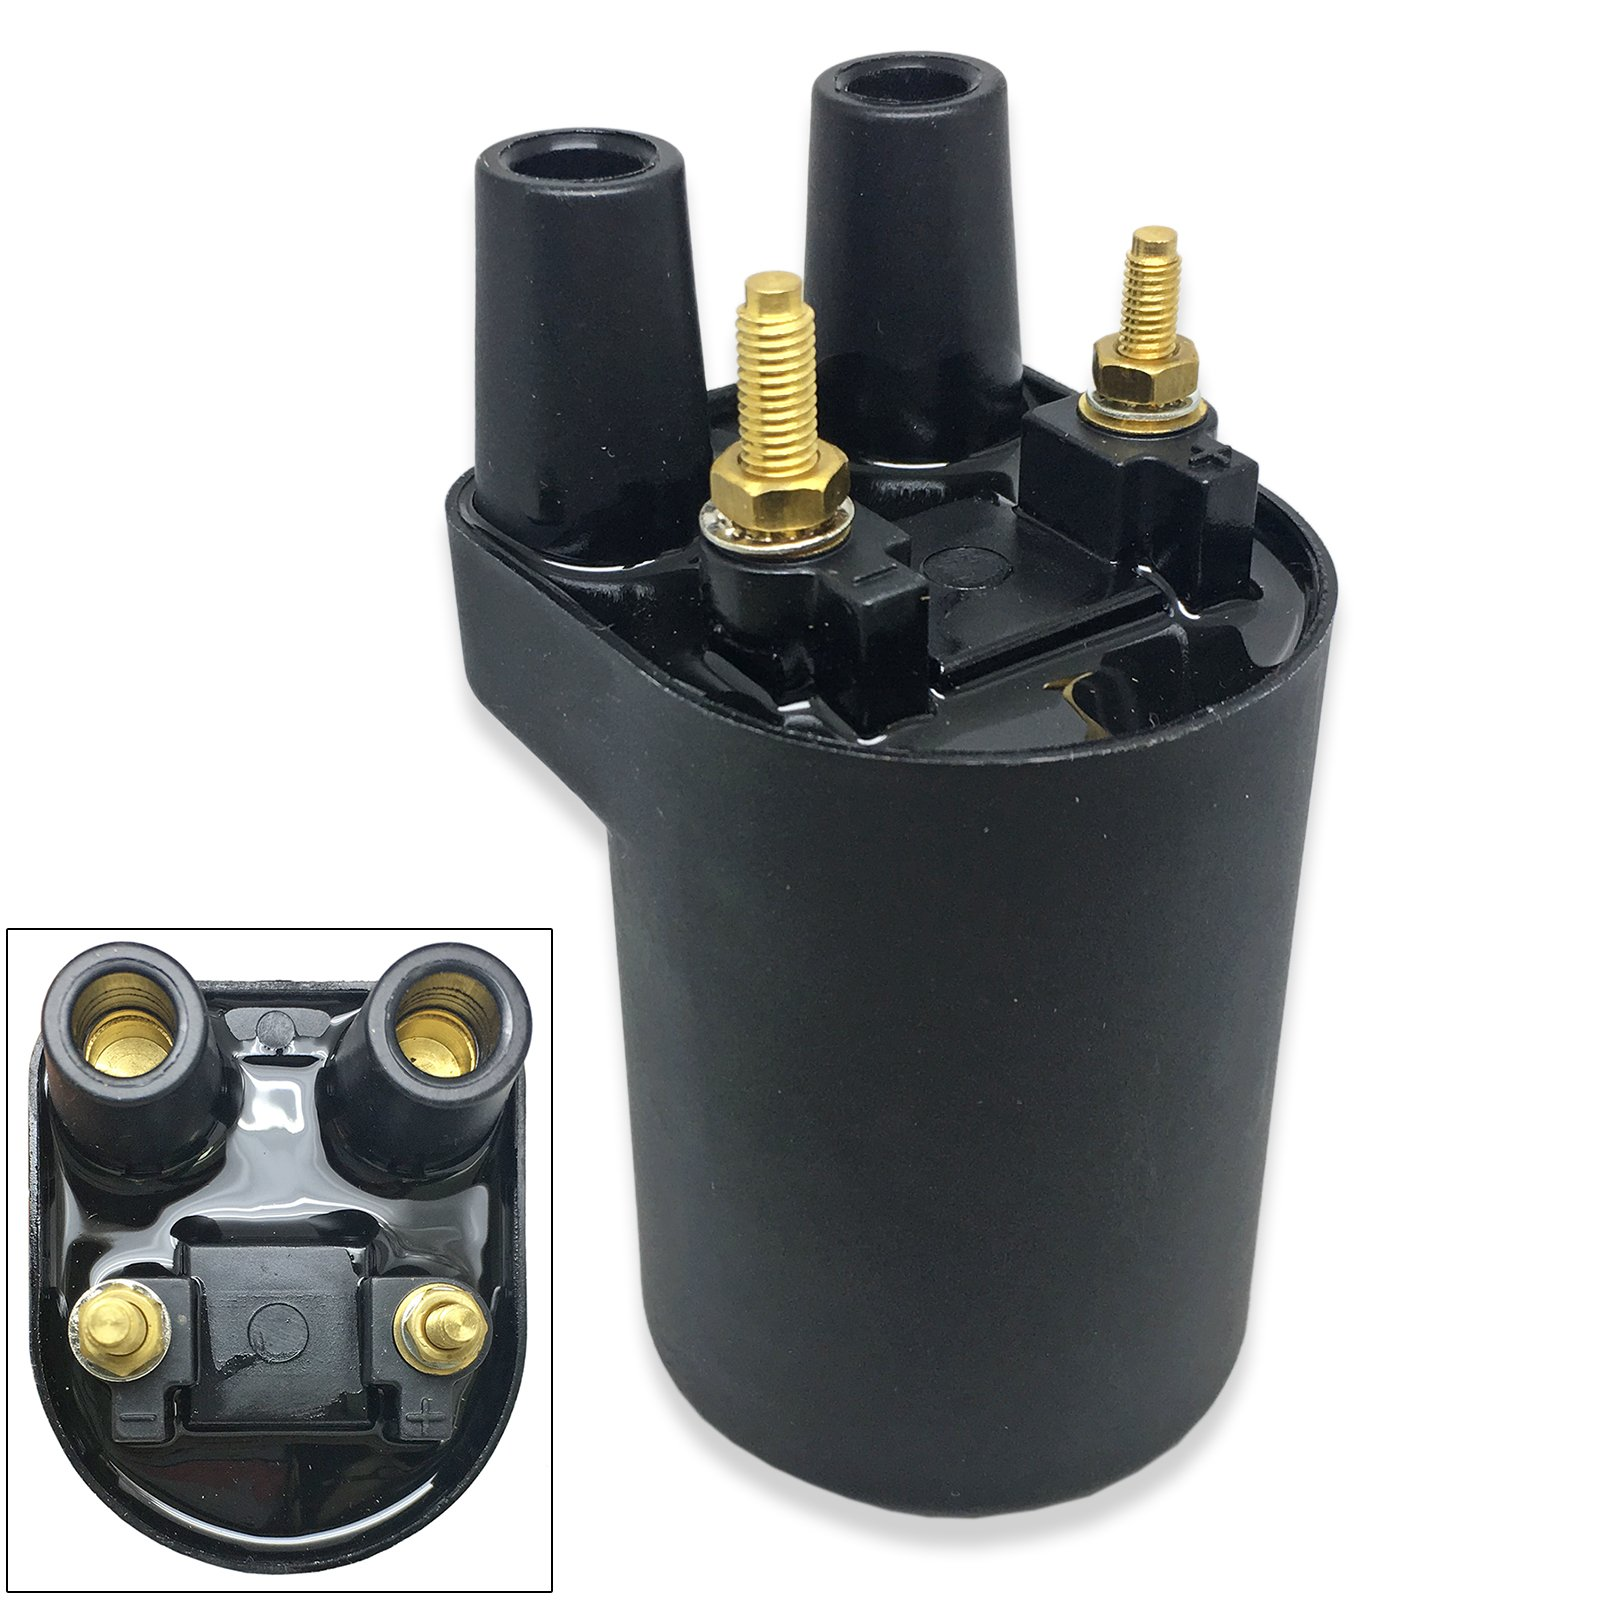 Cheap Onan Ignition, find Onan Ignition deals on line at Alibaba com